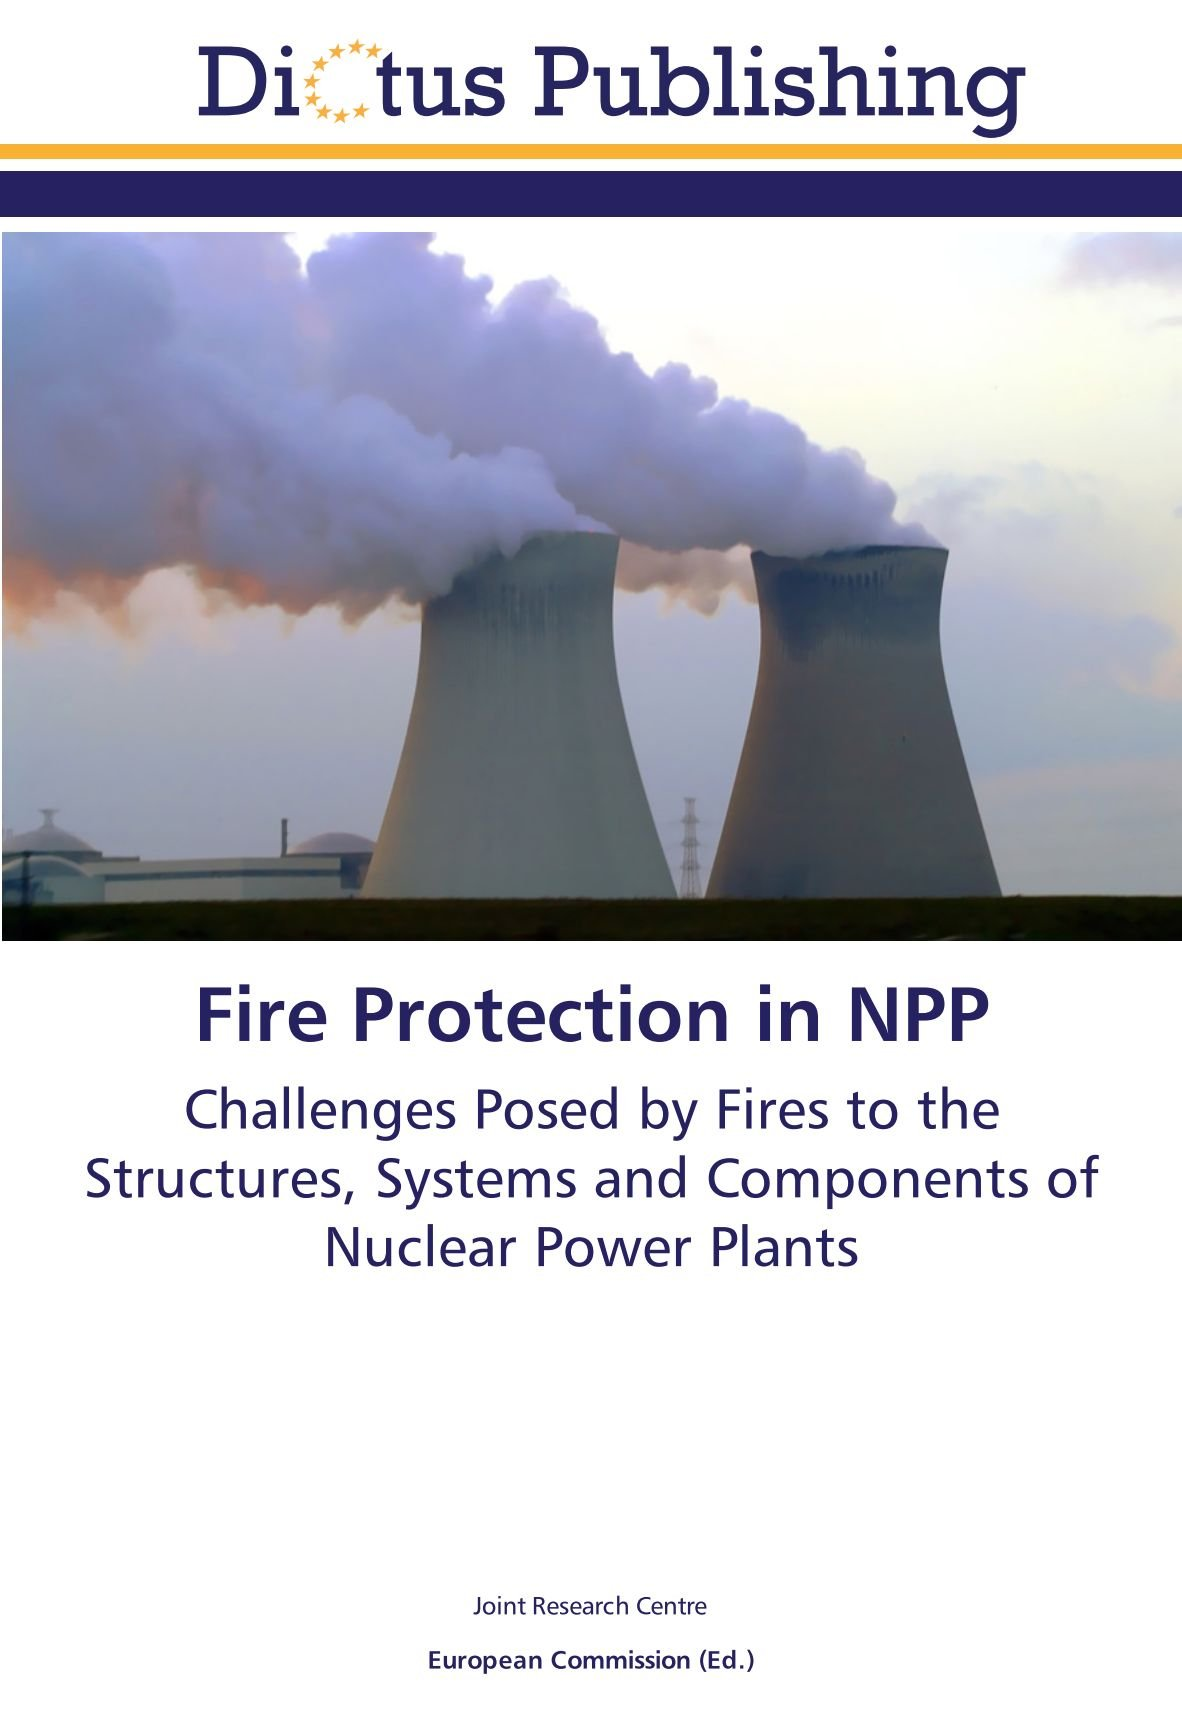 Fire Protection in NPP: Challenges Posed by Fires to the Structures